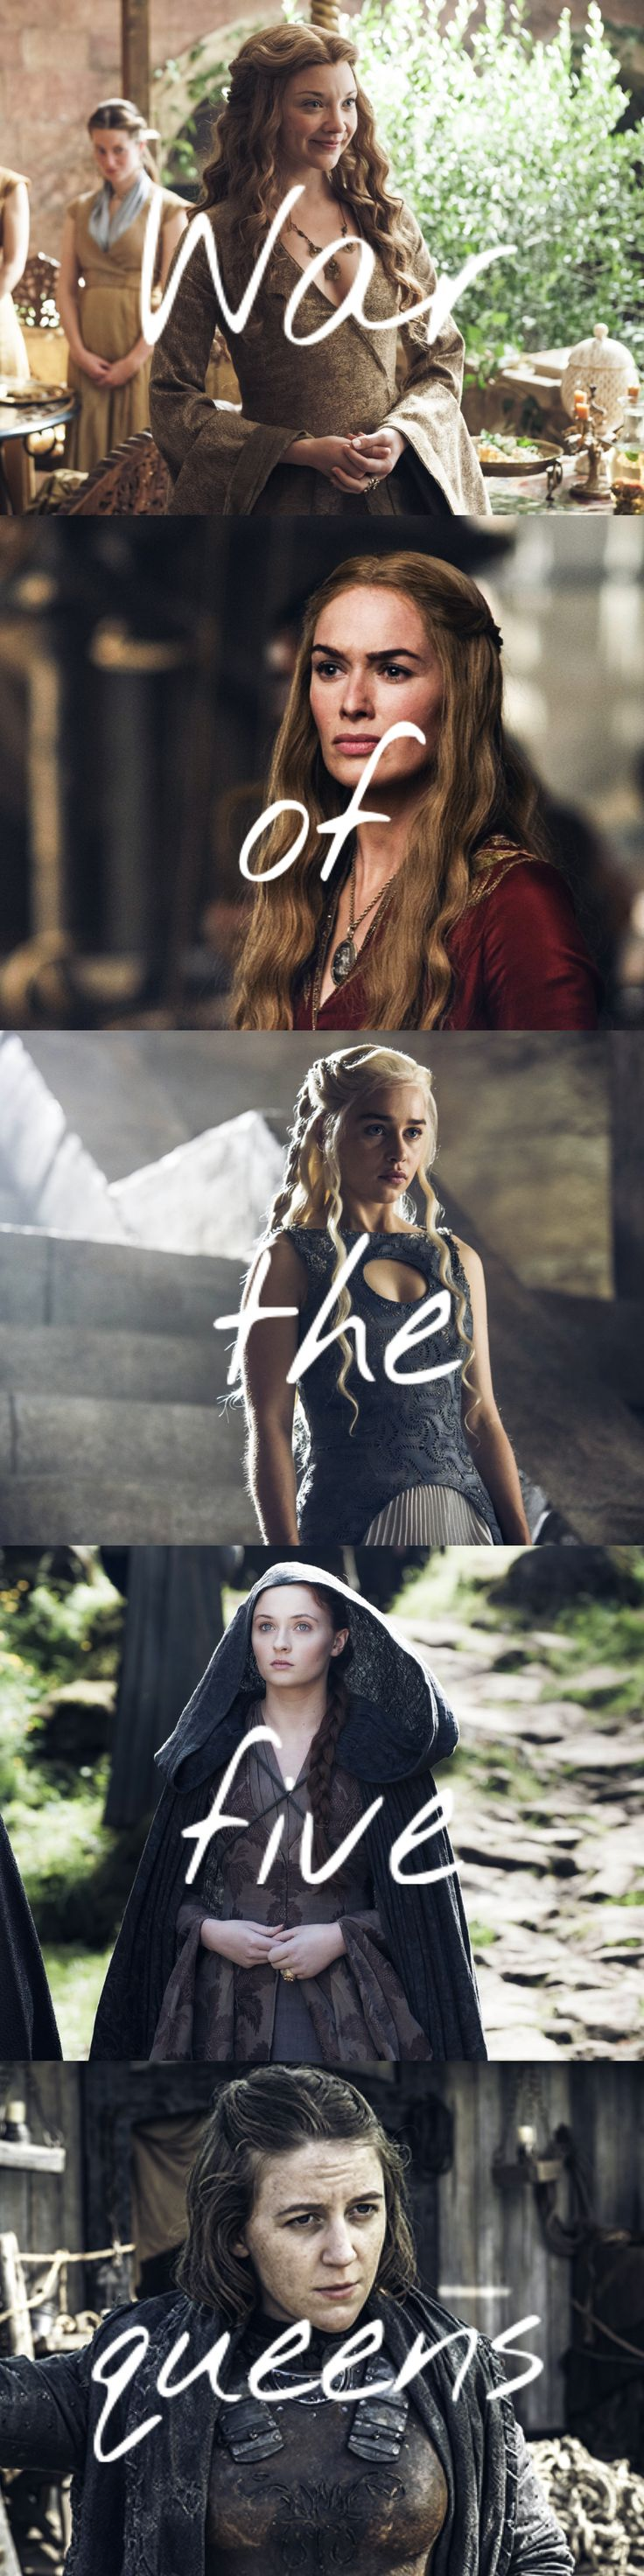 Game of Thrones: Margaery Tyrell, Cersei Lannister, Daenerys Targaryen, Sansa Stark, Asha Greyjoy ~ The war of the five queens